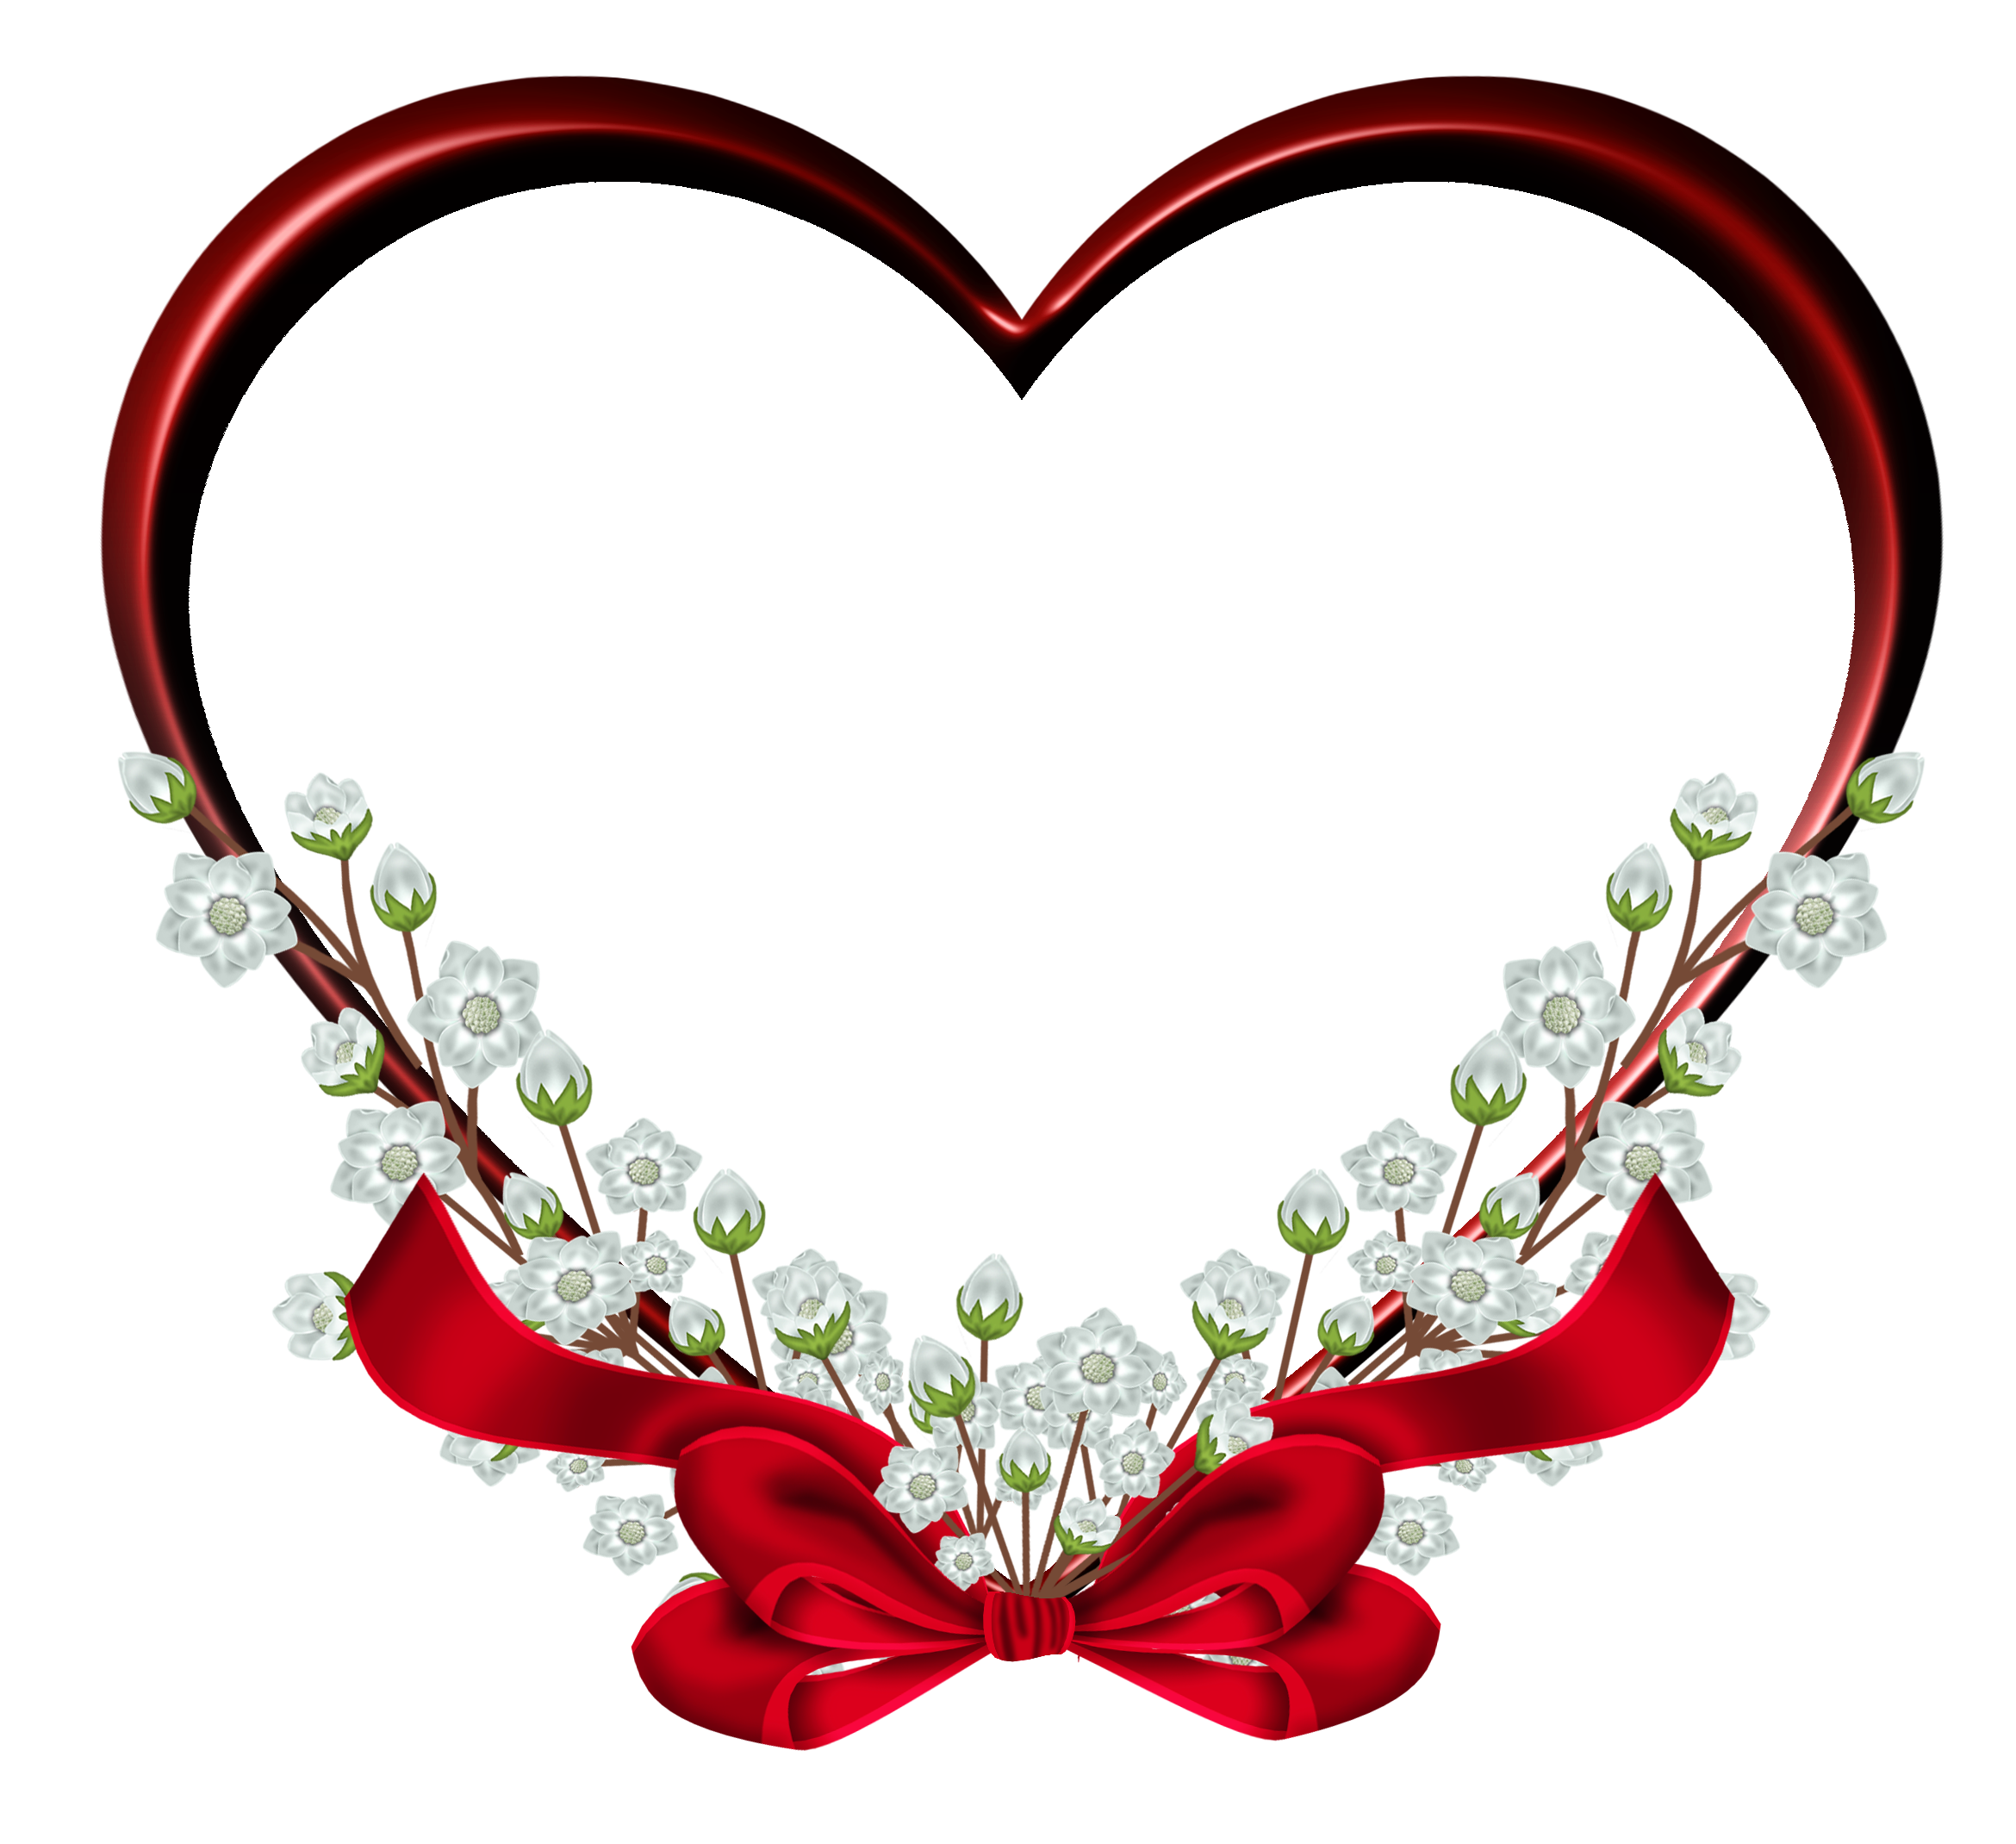 transparent red heart frame decor png clipart clipart